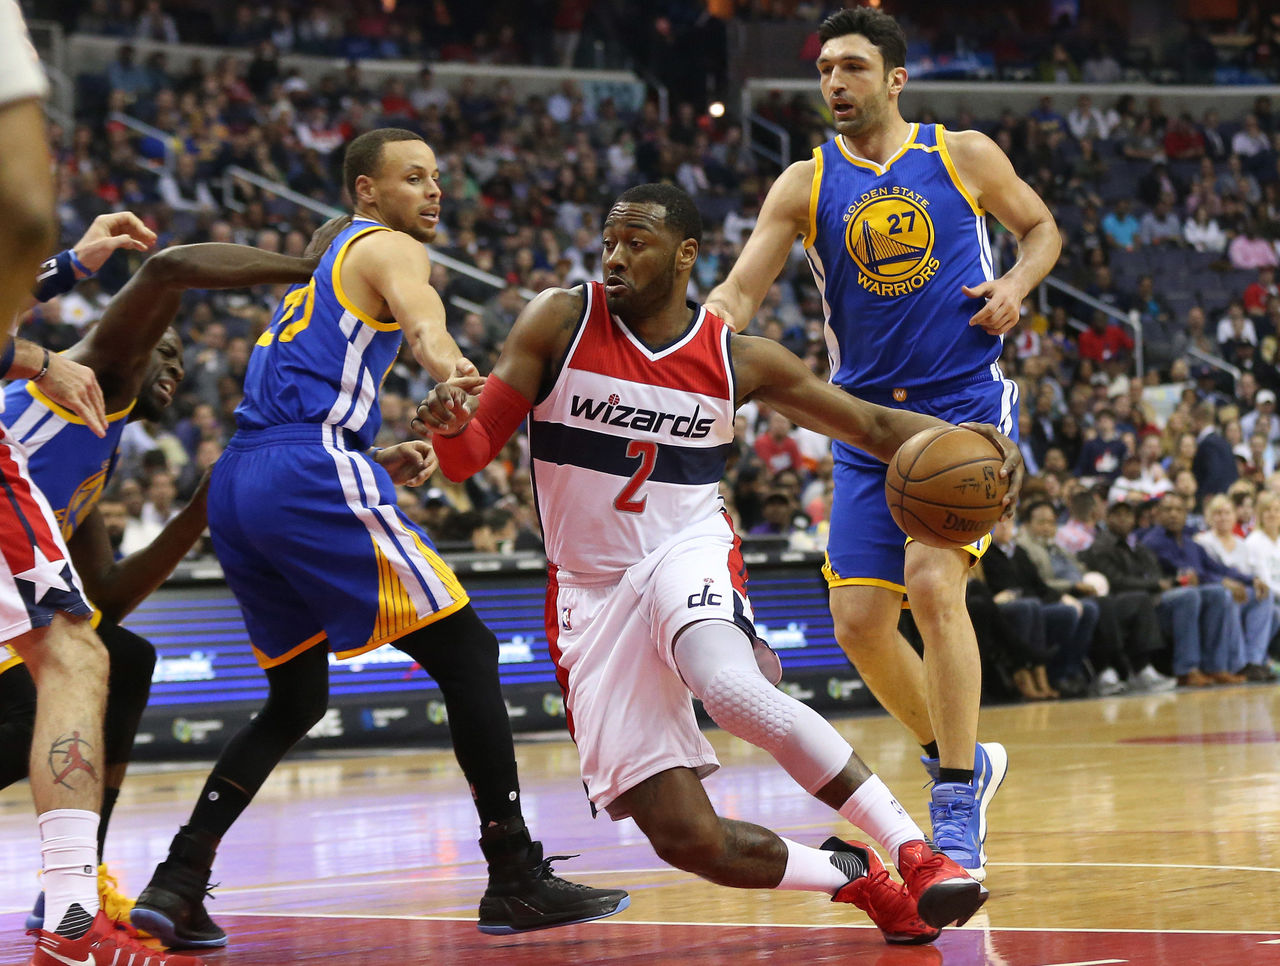 Cropped_2017-03-01t012507z_273096810_nocid_rtrmadp_3_nba-golden-state-warriors-at-washington-wizards